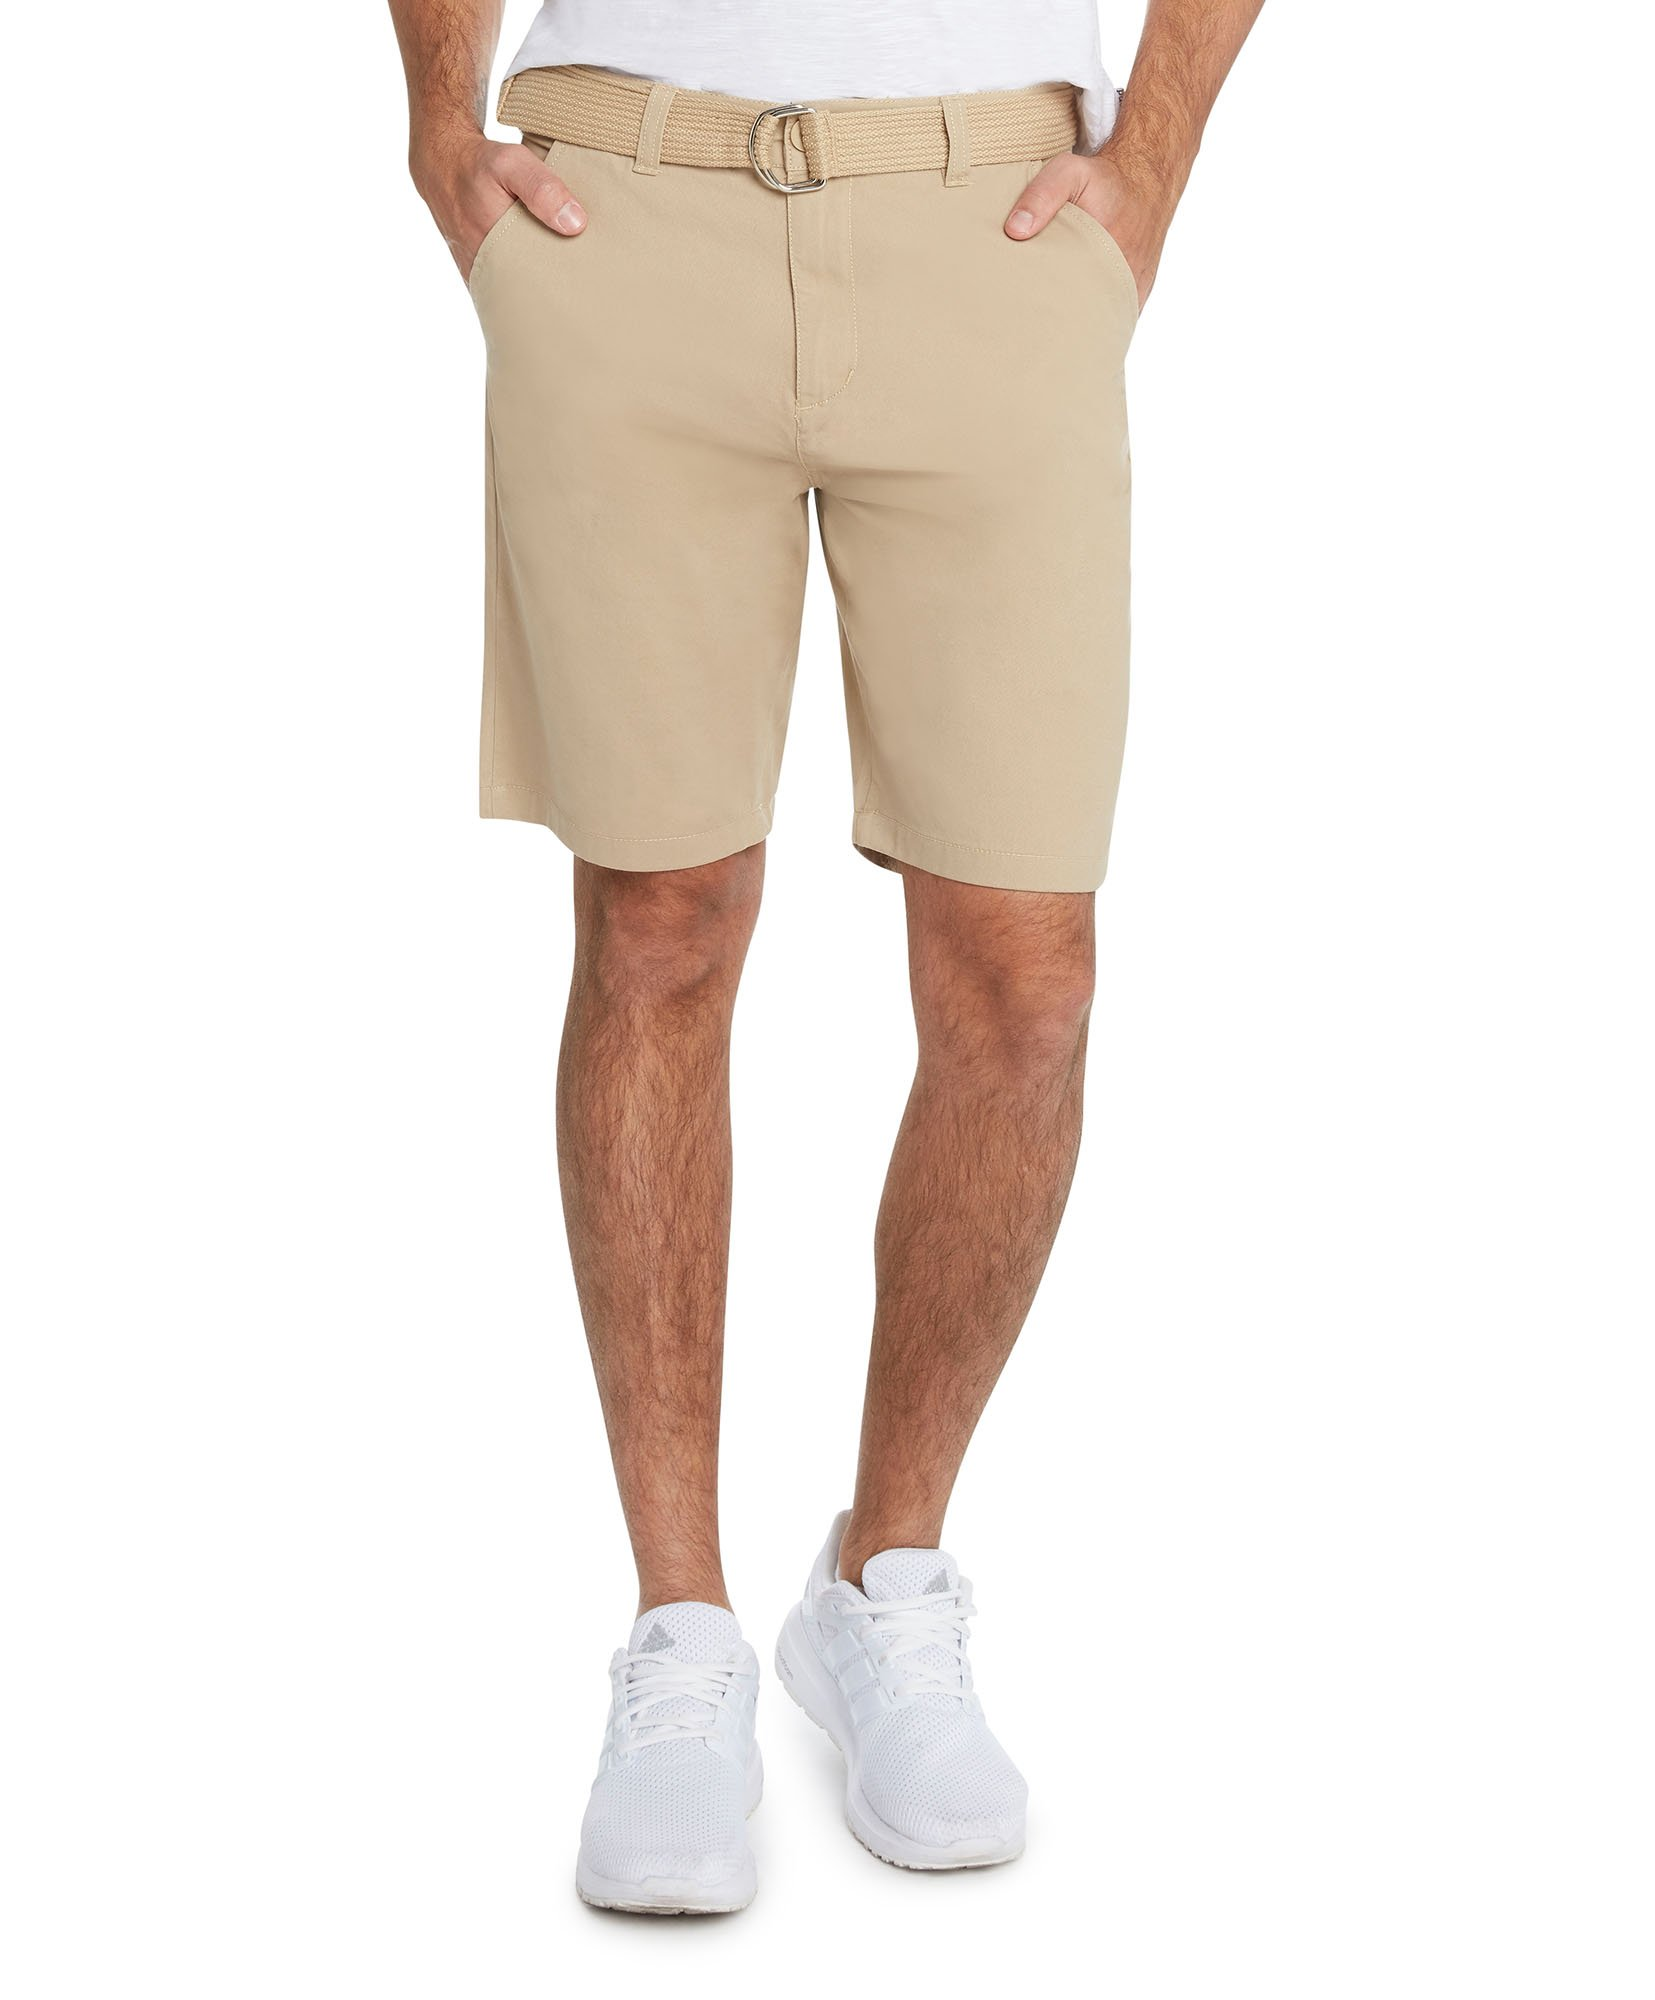 9 Crowns Men's Flat Front Modern fit Twill Chino Belted Shorts Essentials-Light Coffee-40